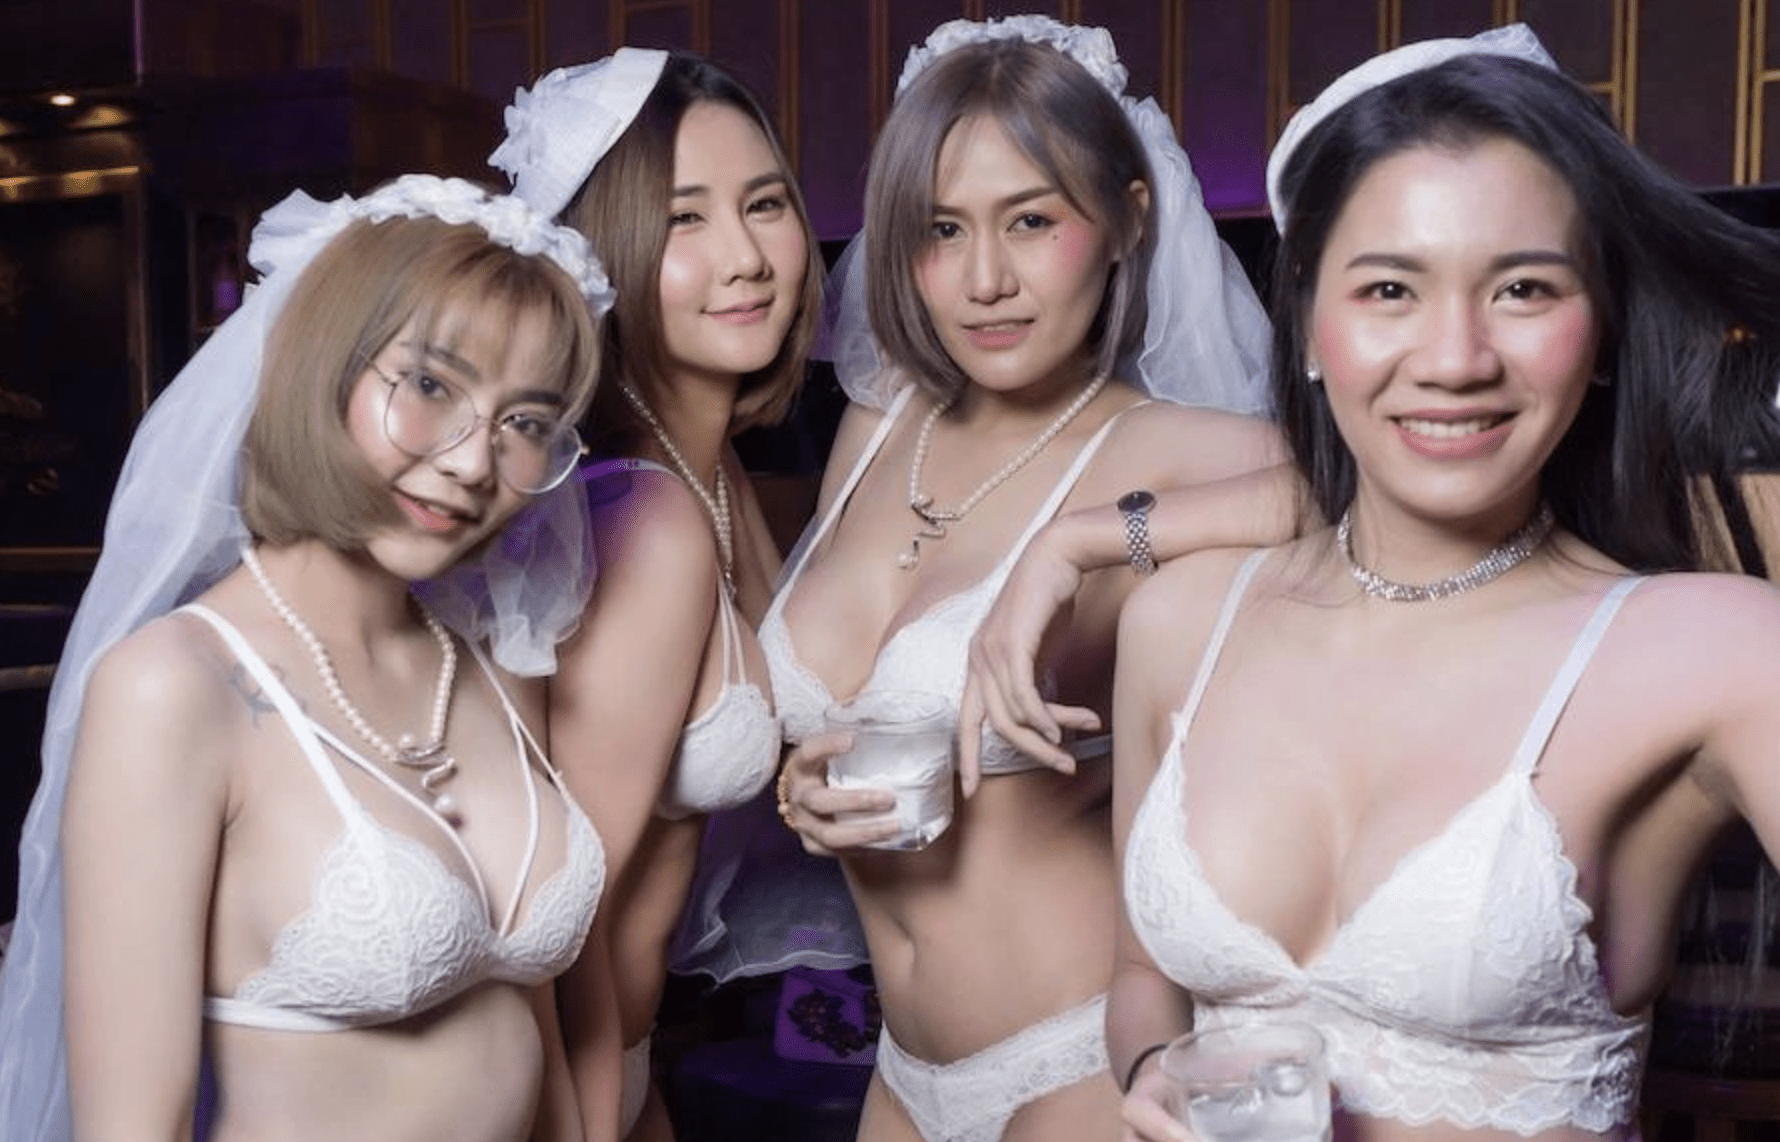 Bangkok Where to Go to Meet Girls and How Much to Pay?